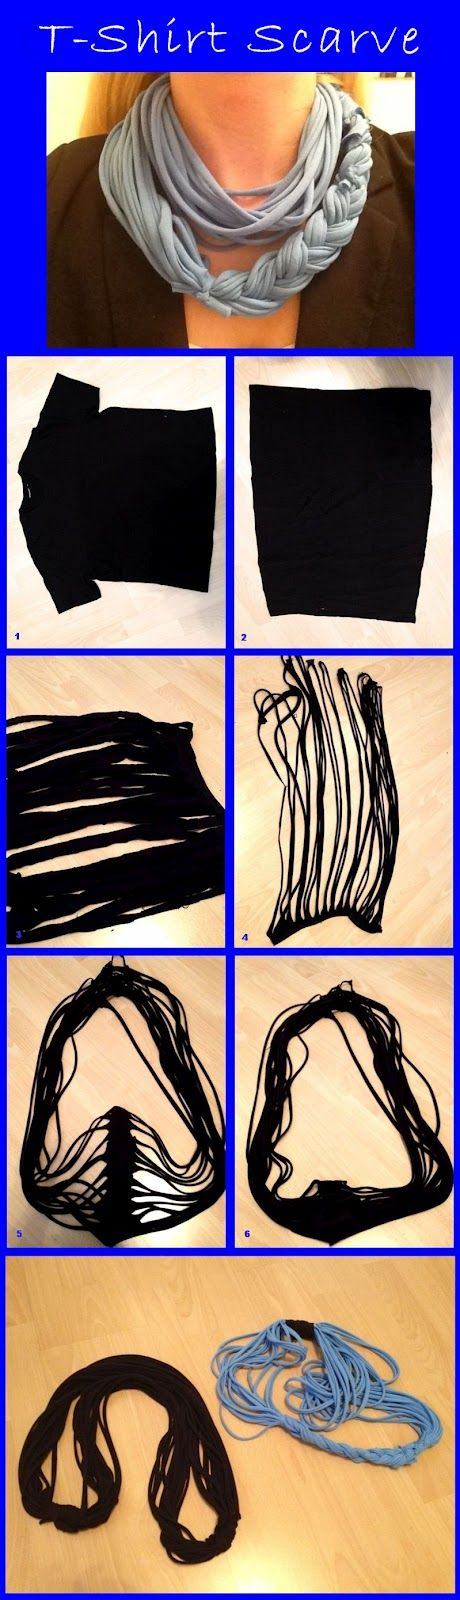 sweets of life: T-Shirt Scarve DIY